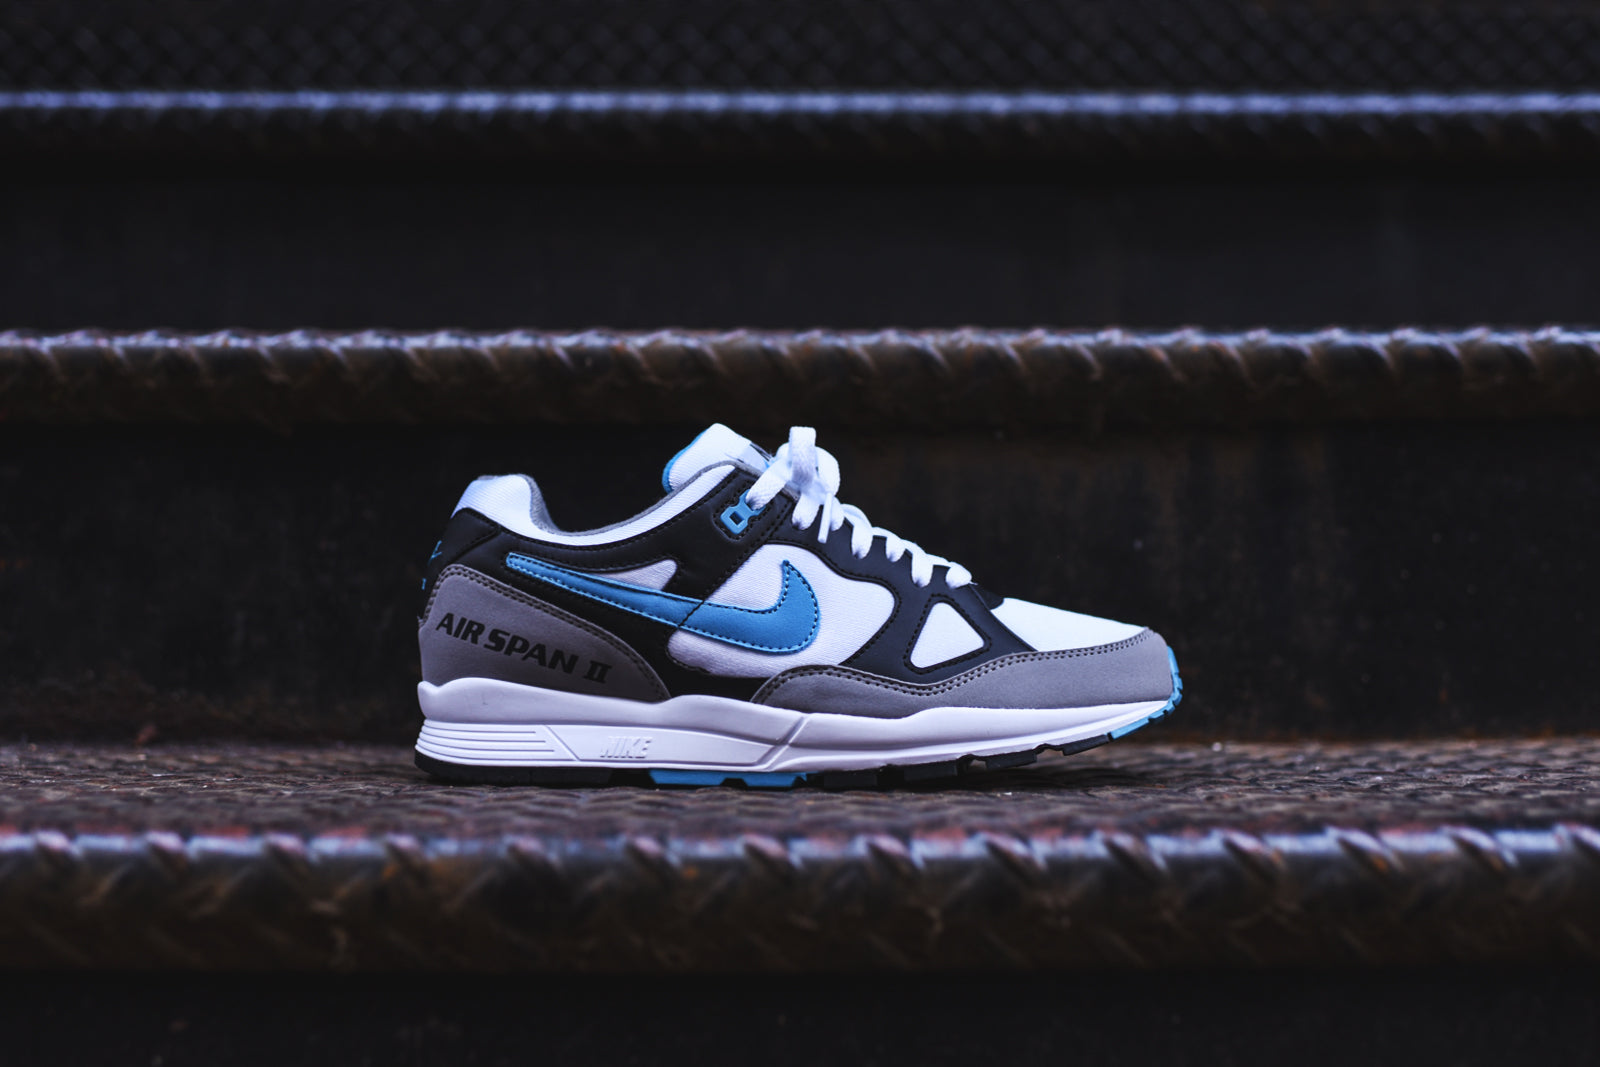 low priced 5ddb8 fedca Nike Air Span 2 - White / Grey / Black – Kith